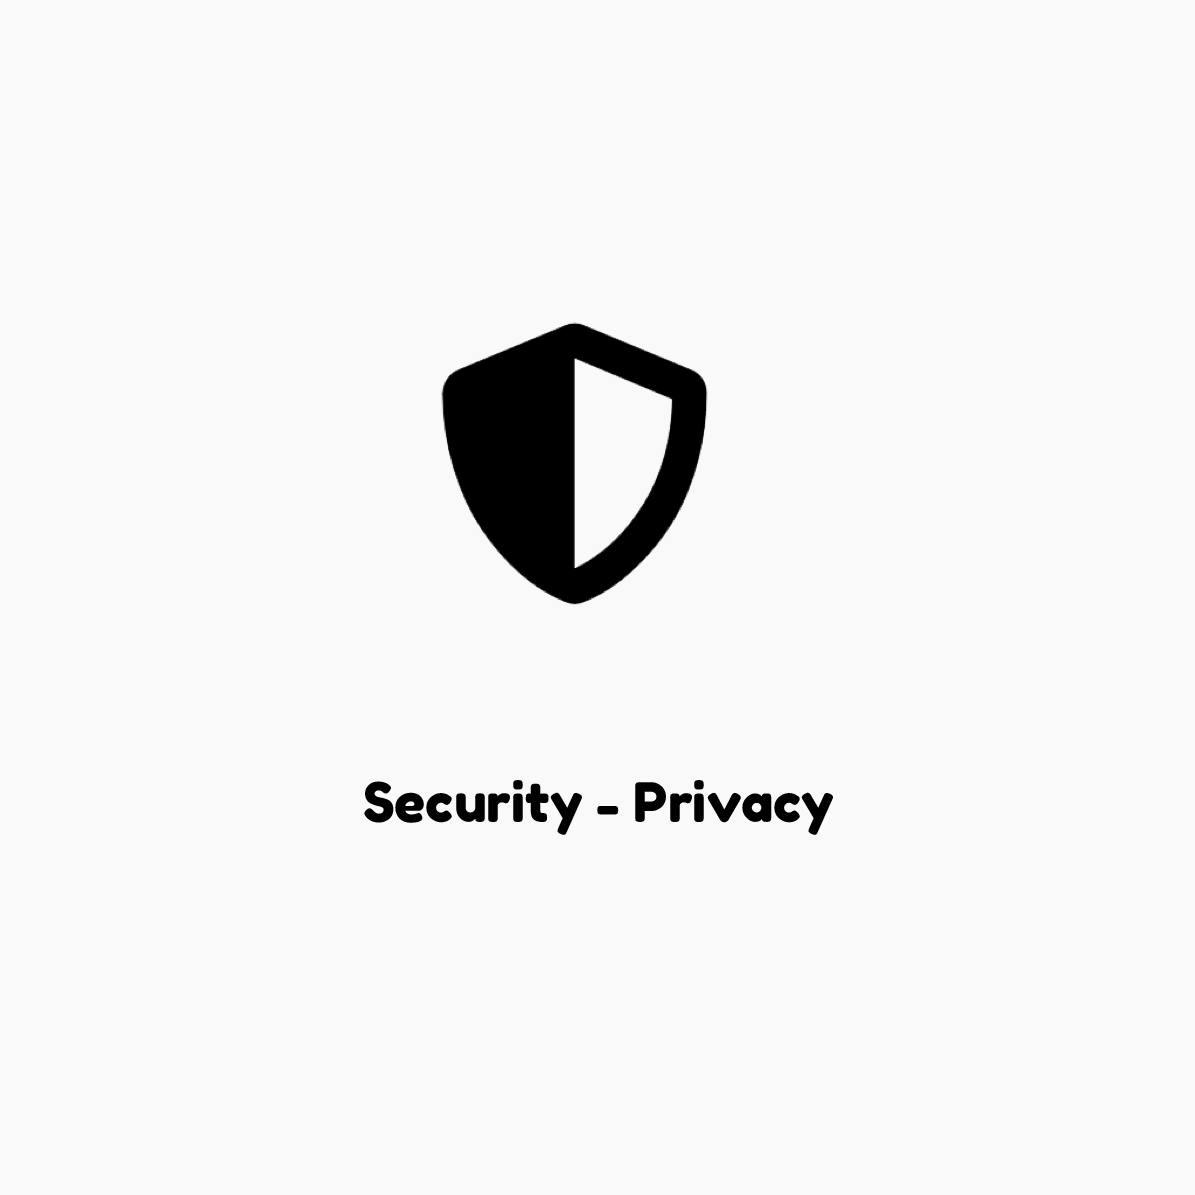 Security-Privacy